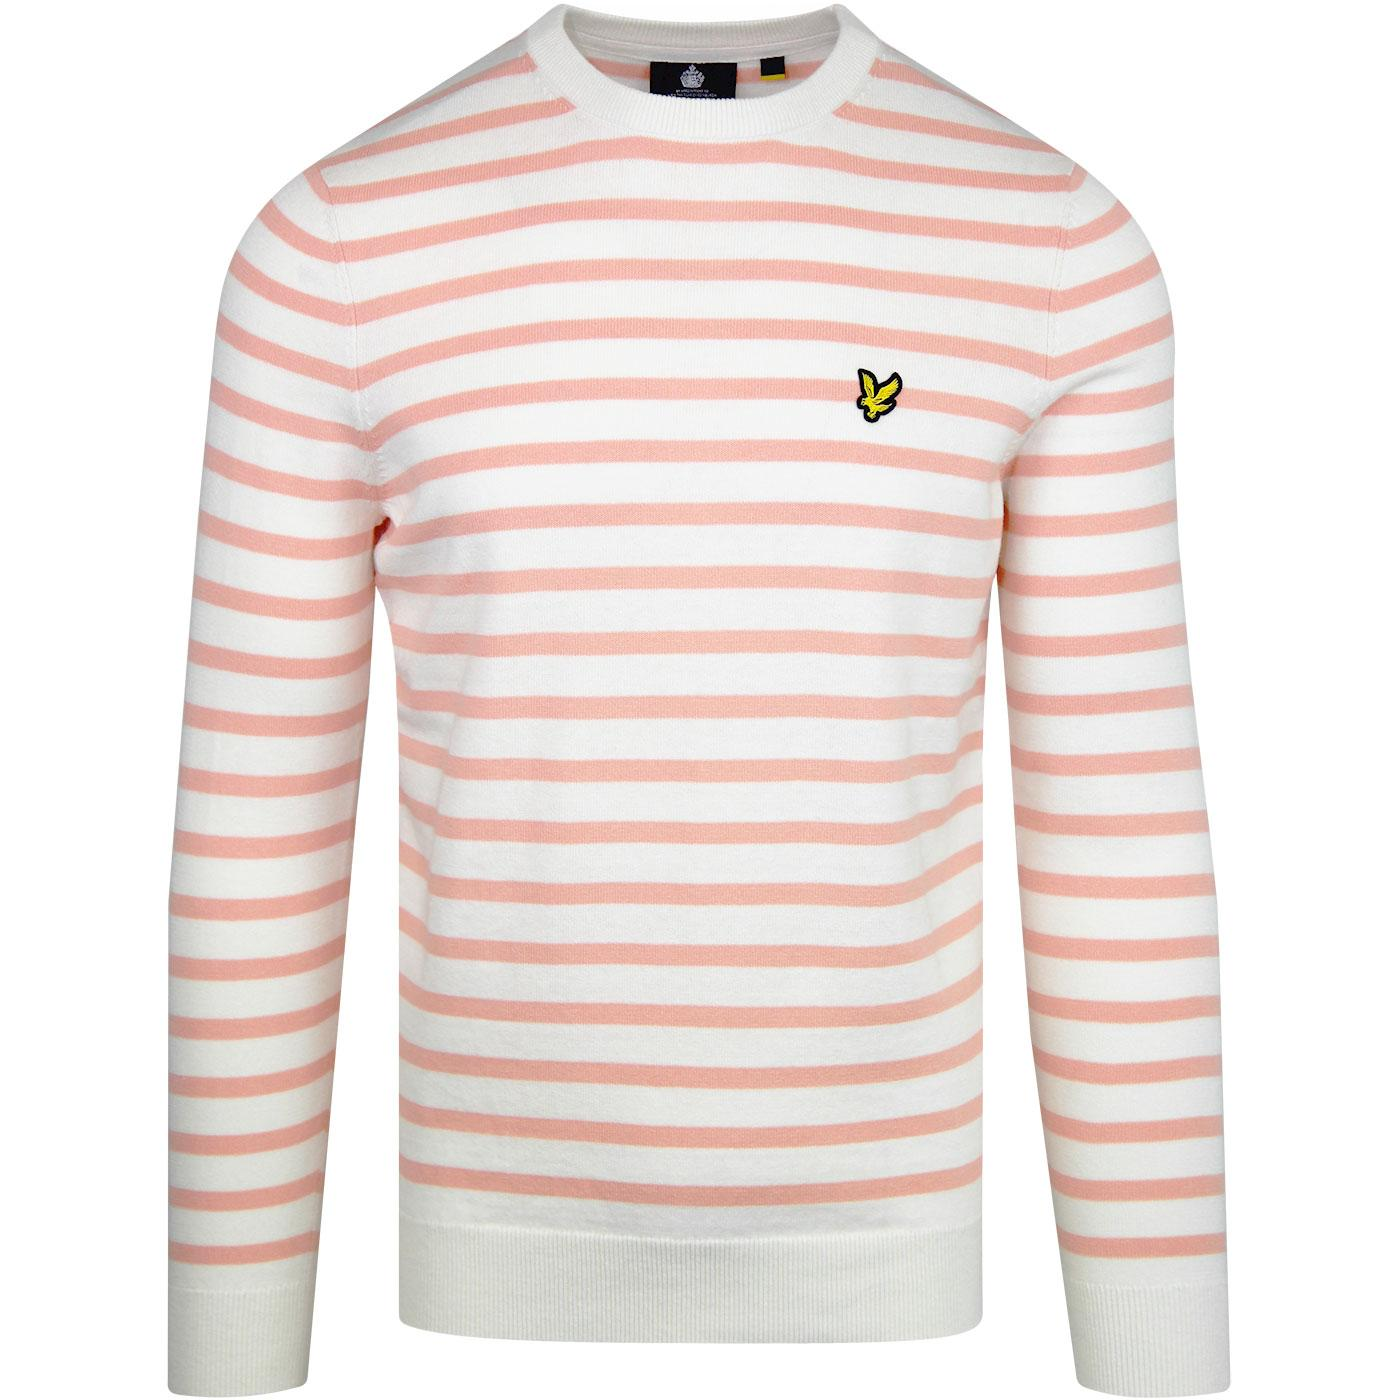 LYLE & SCOTT Retro Mod Breton Stripe Jumper CORAL